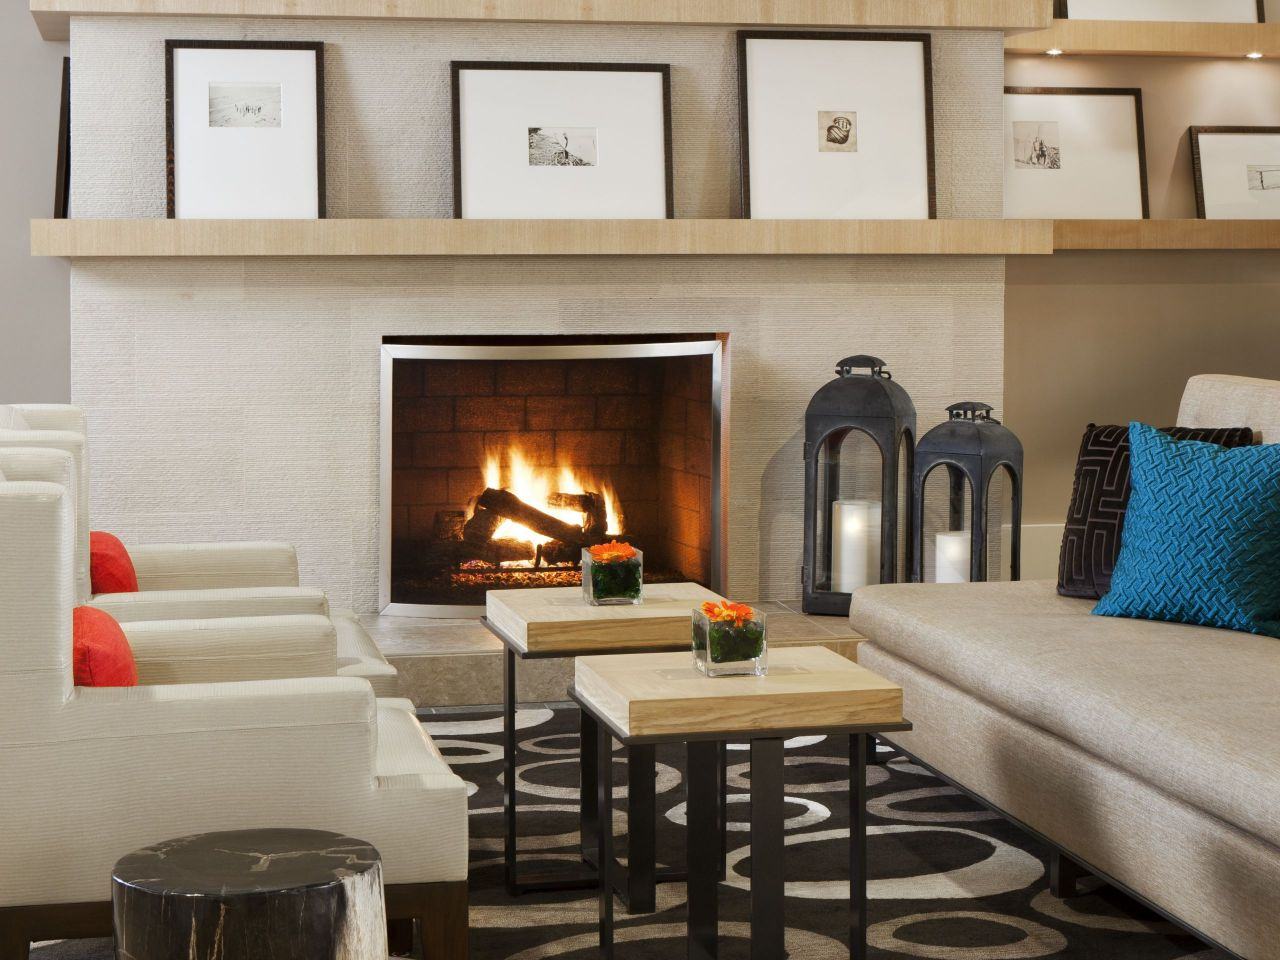 Hyatt Regency Newport Beach Fireplace